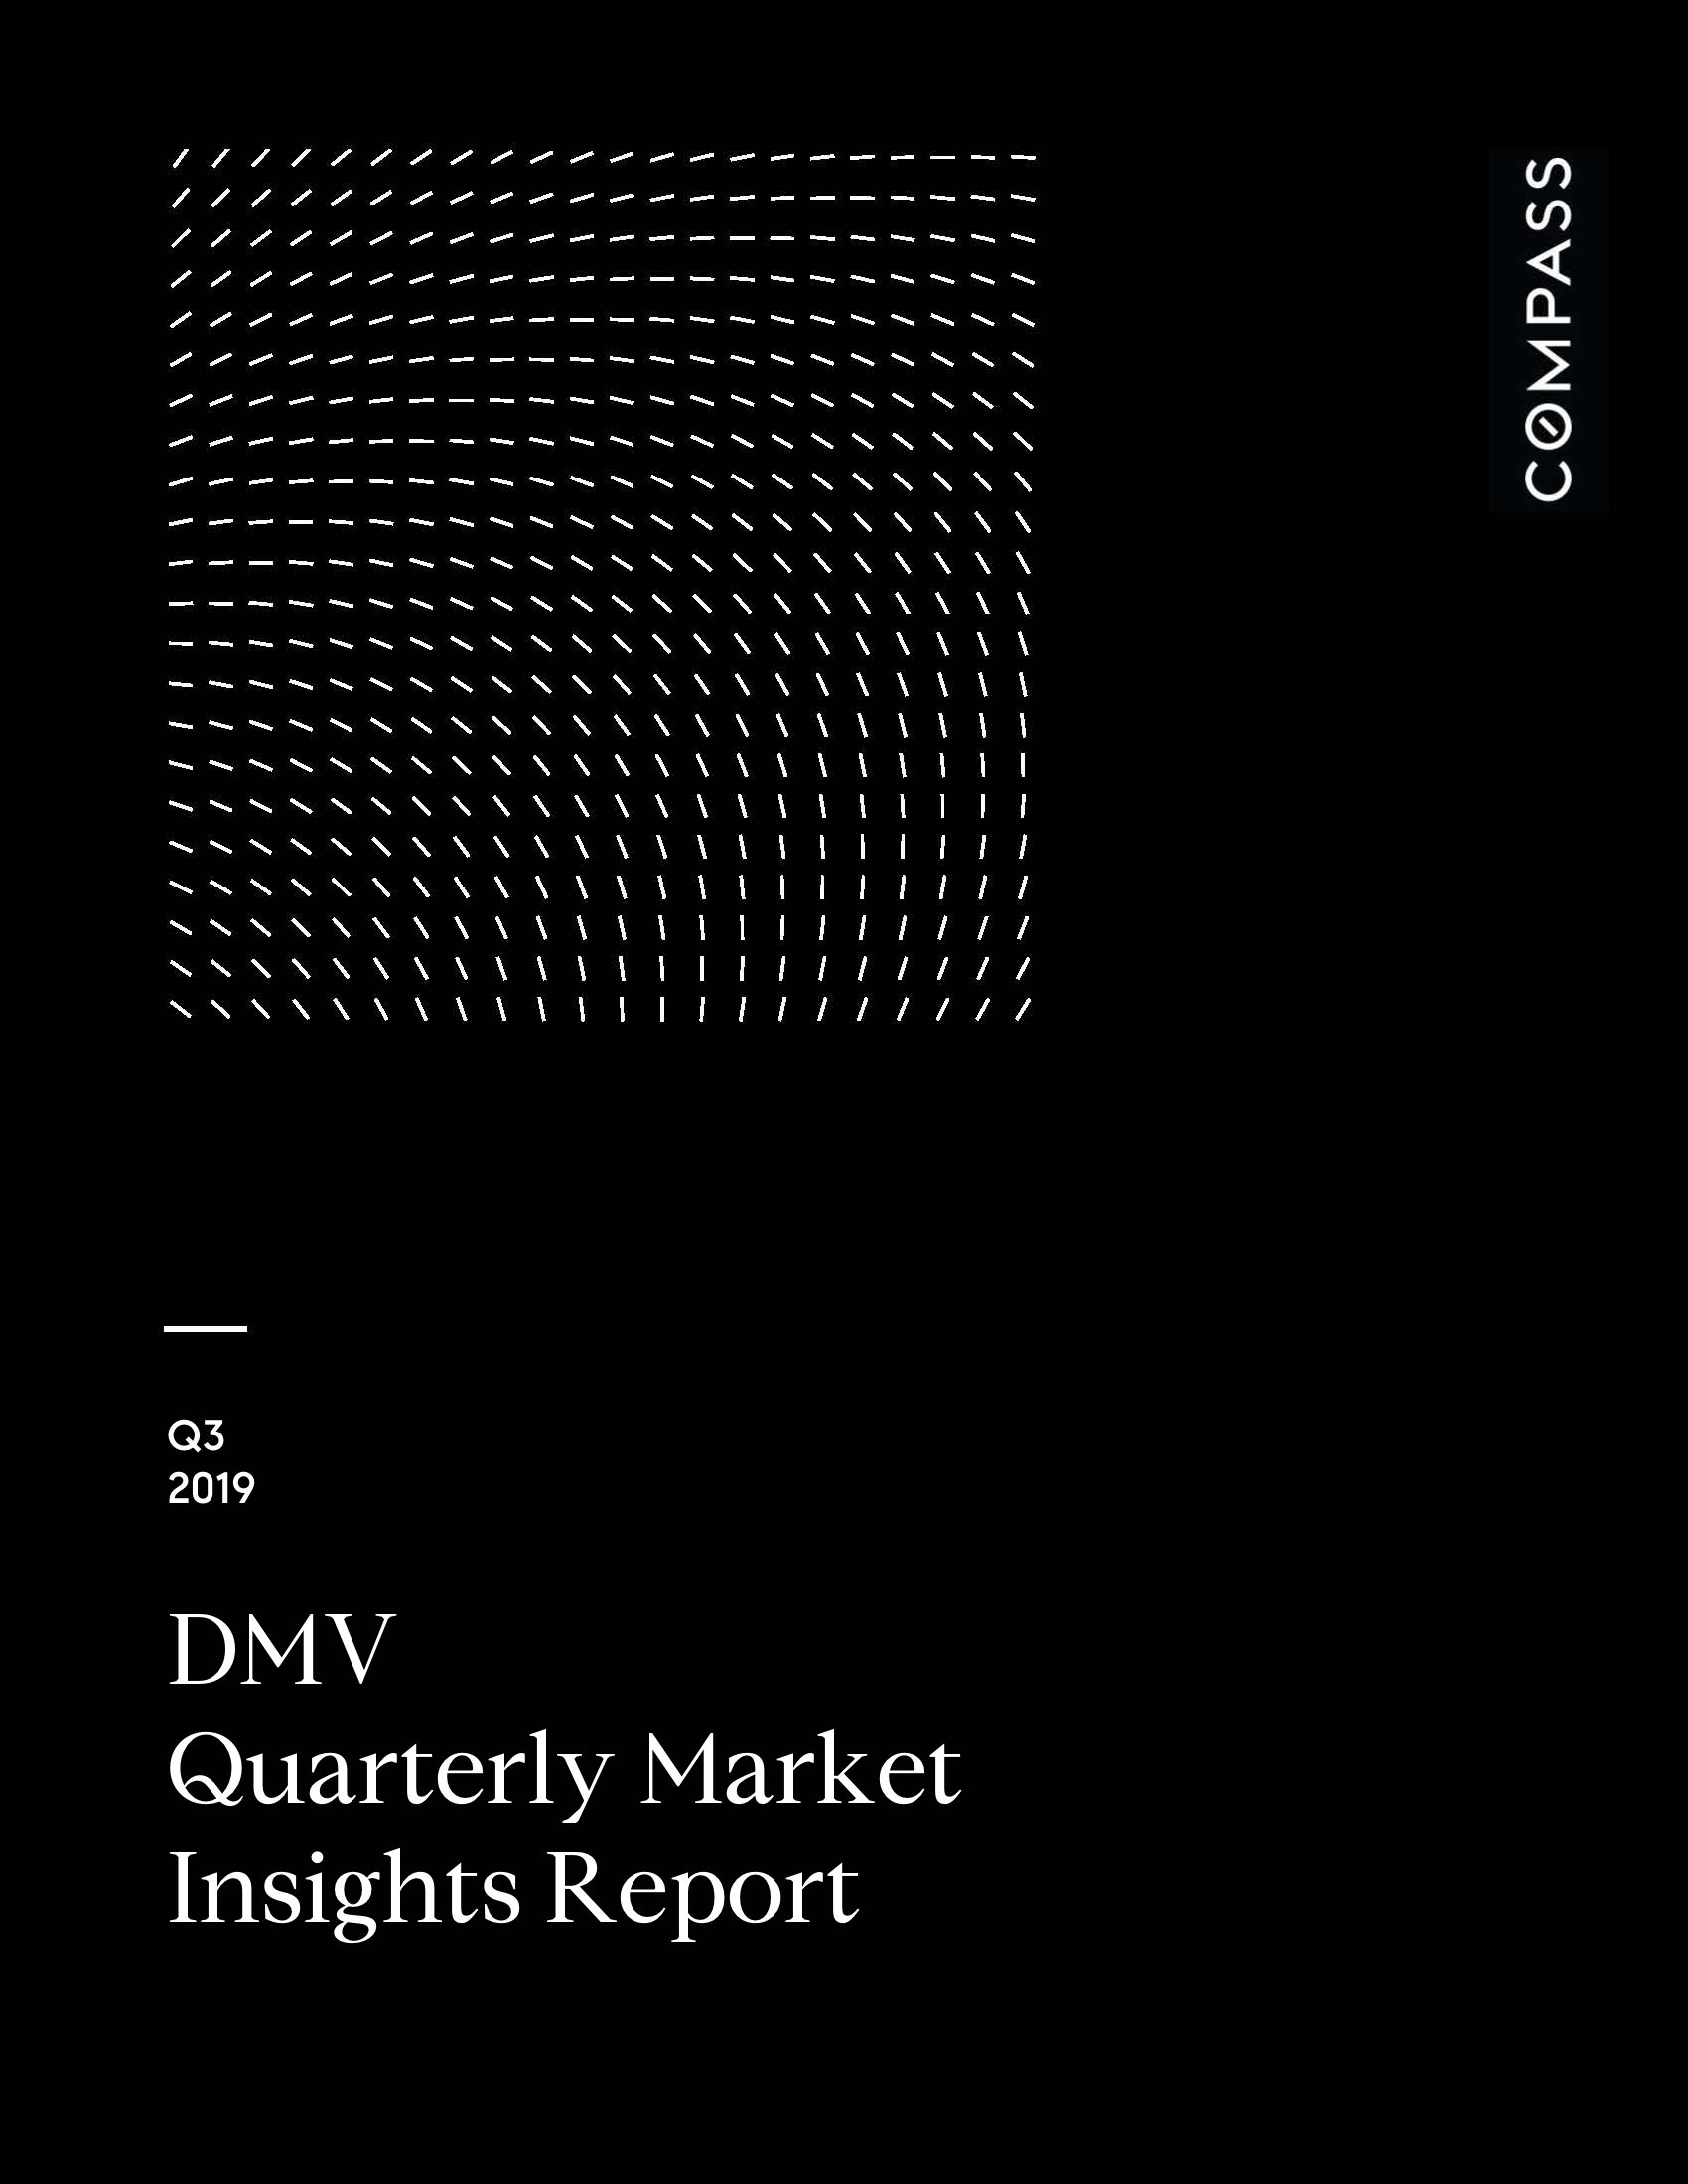 DMV Quarterly Market Insights Report - Q3 2019